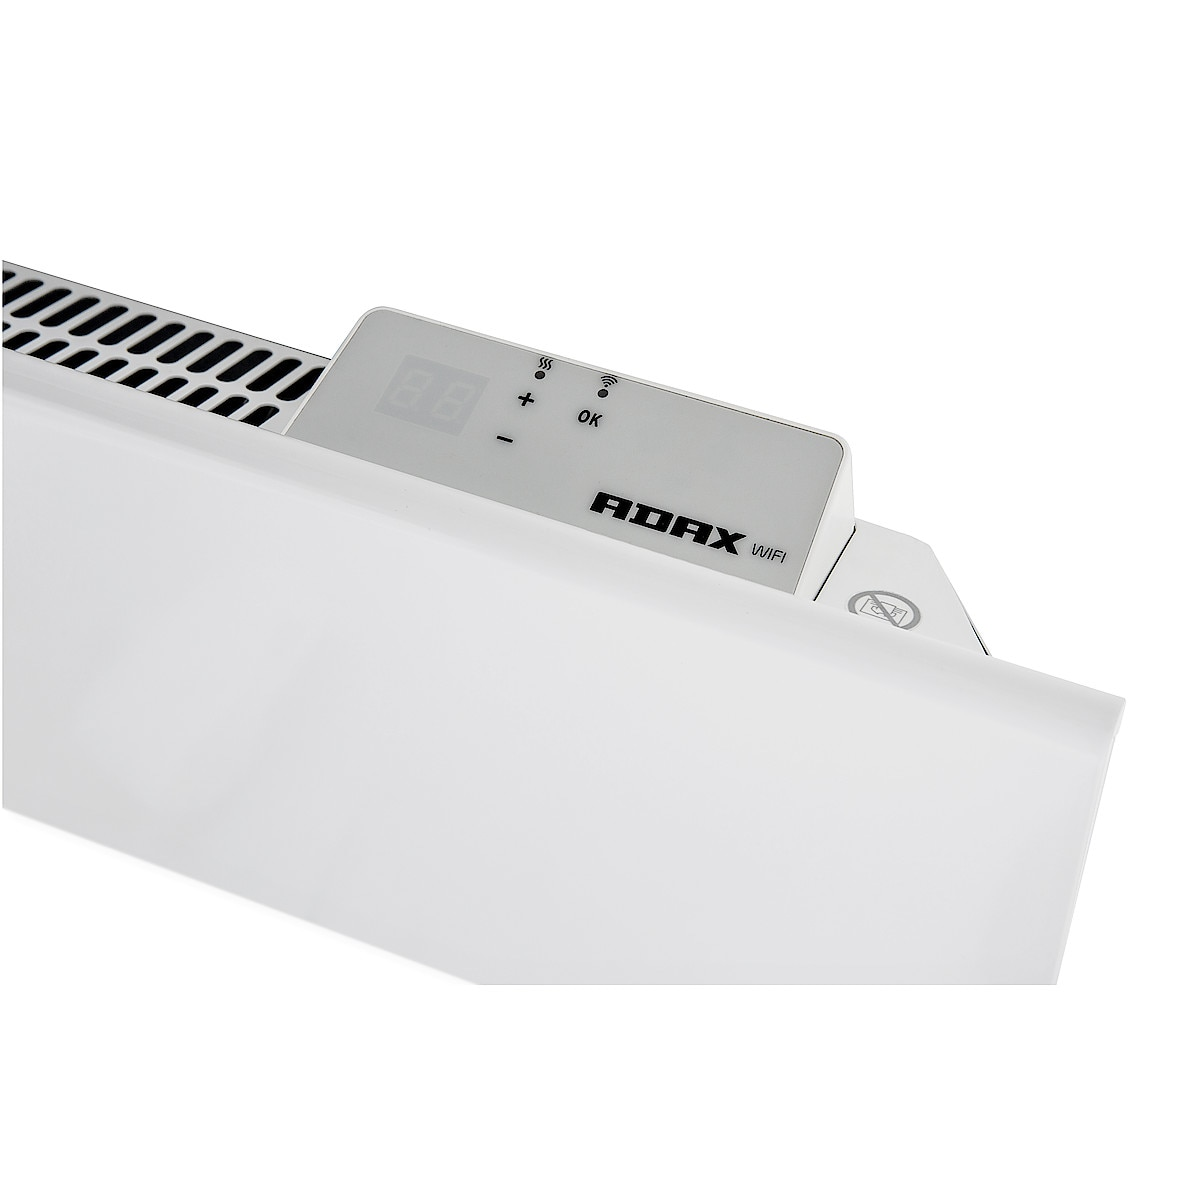 Element med WiFi 1200 W 230 V Adax Neo H12KWT